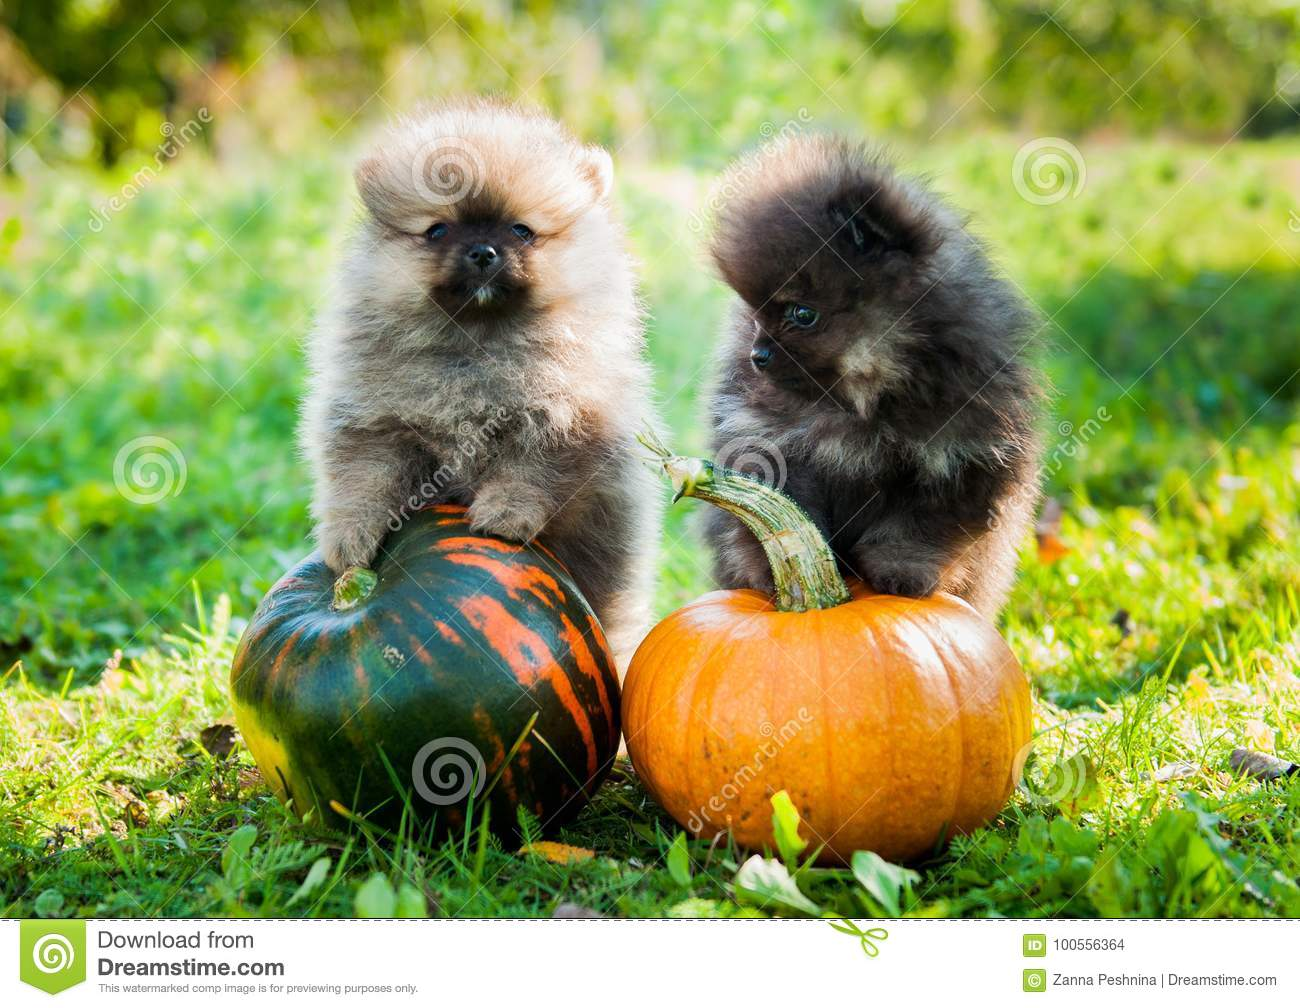 pomeranian dogs and pumpkin, halloween stock photo - image of funny